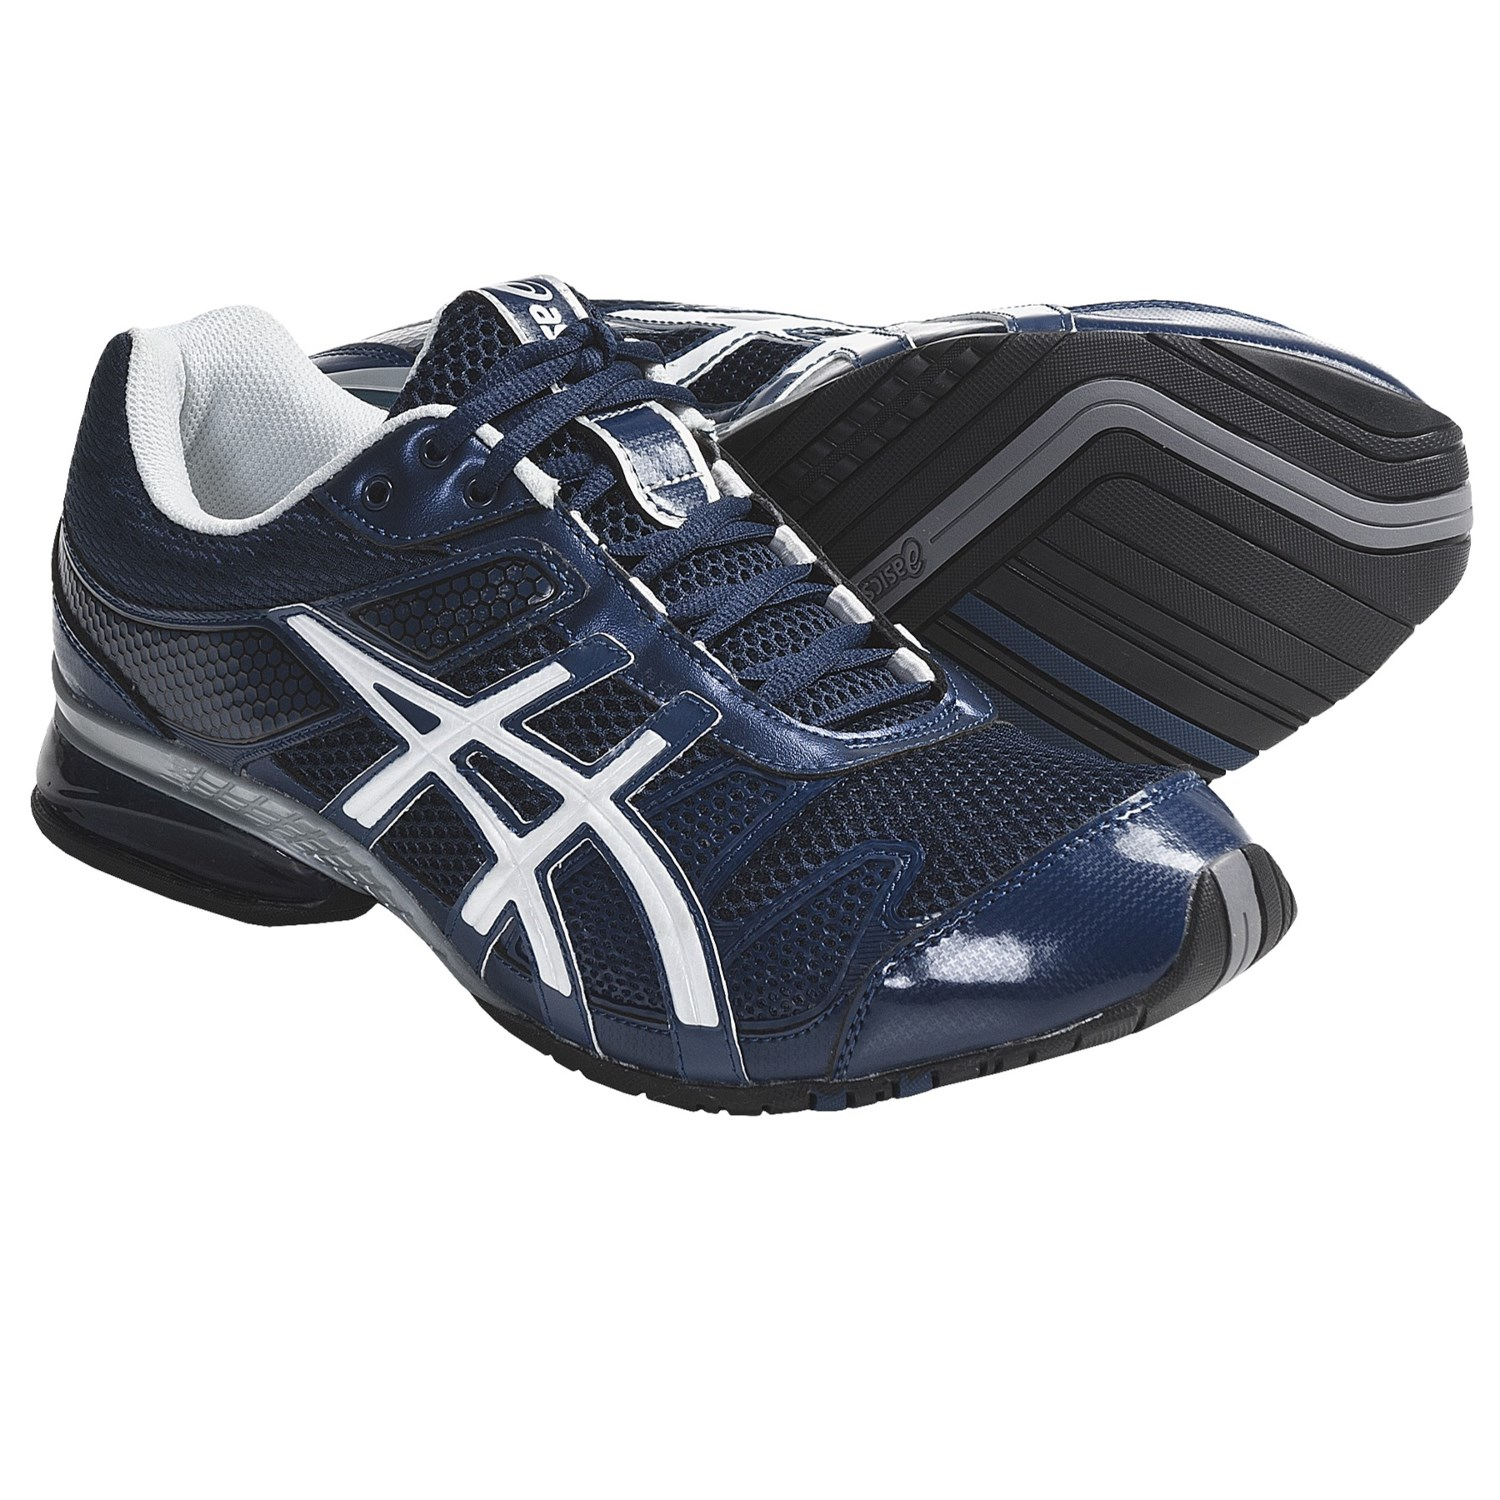 Asics GEL-Plexus Cross Training Shoes (For Men) in Navy/Silver/White